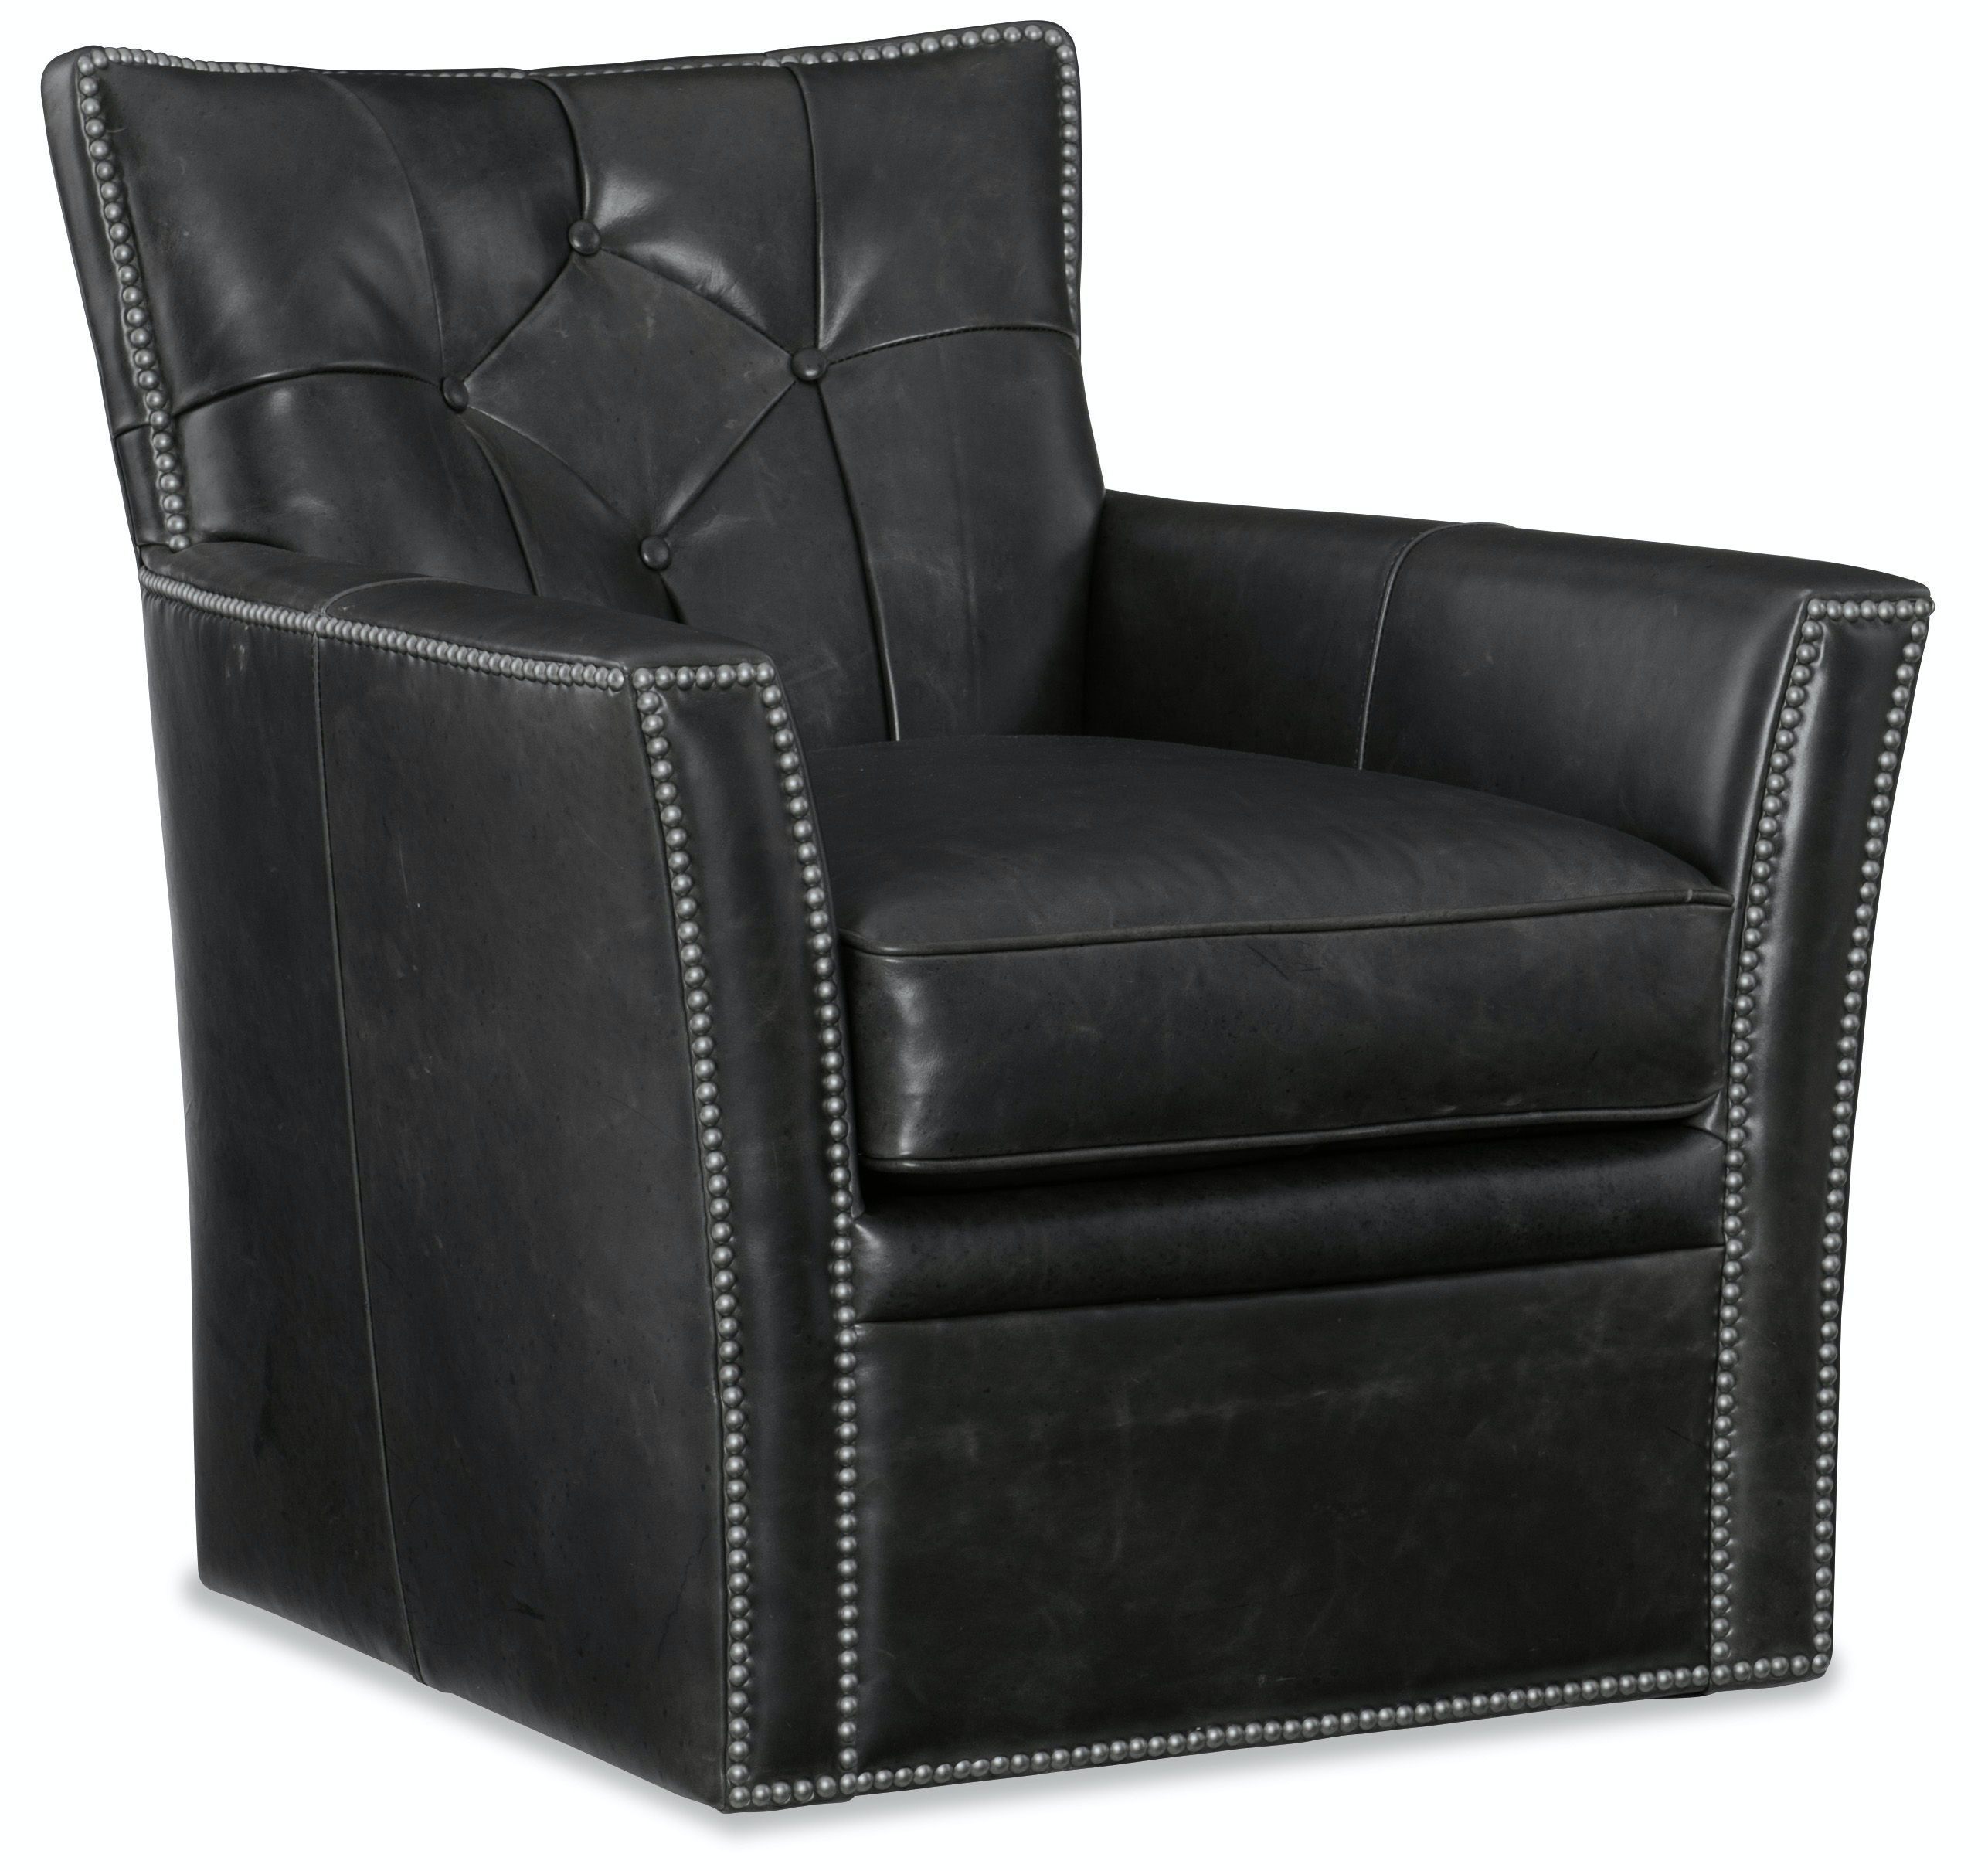 Hooker Furniture Conner Swivel Club Chair CC503-SW-096  sc 1 st  Hooker Furniture & Hooker Furniture Living Room Conner Swivel Club Chair CC503-SW-096